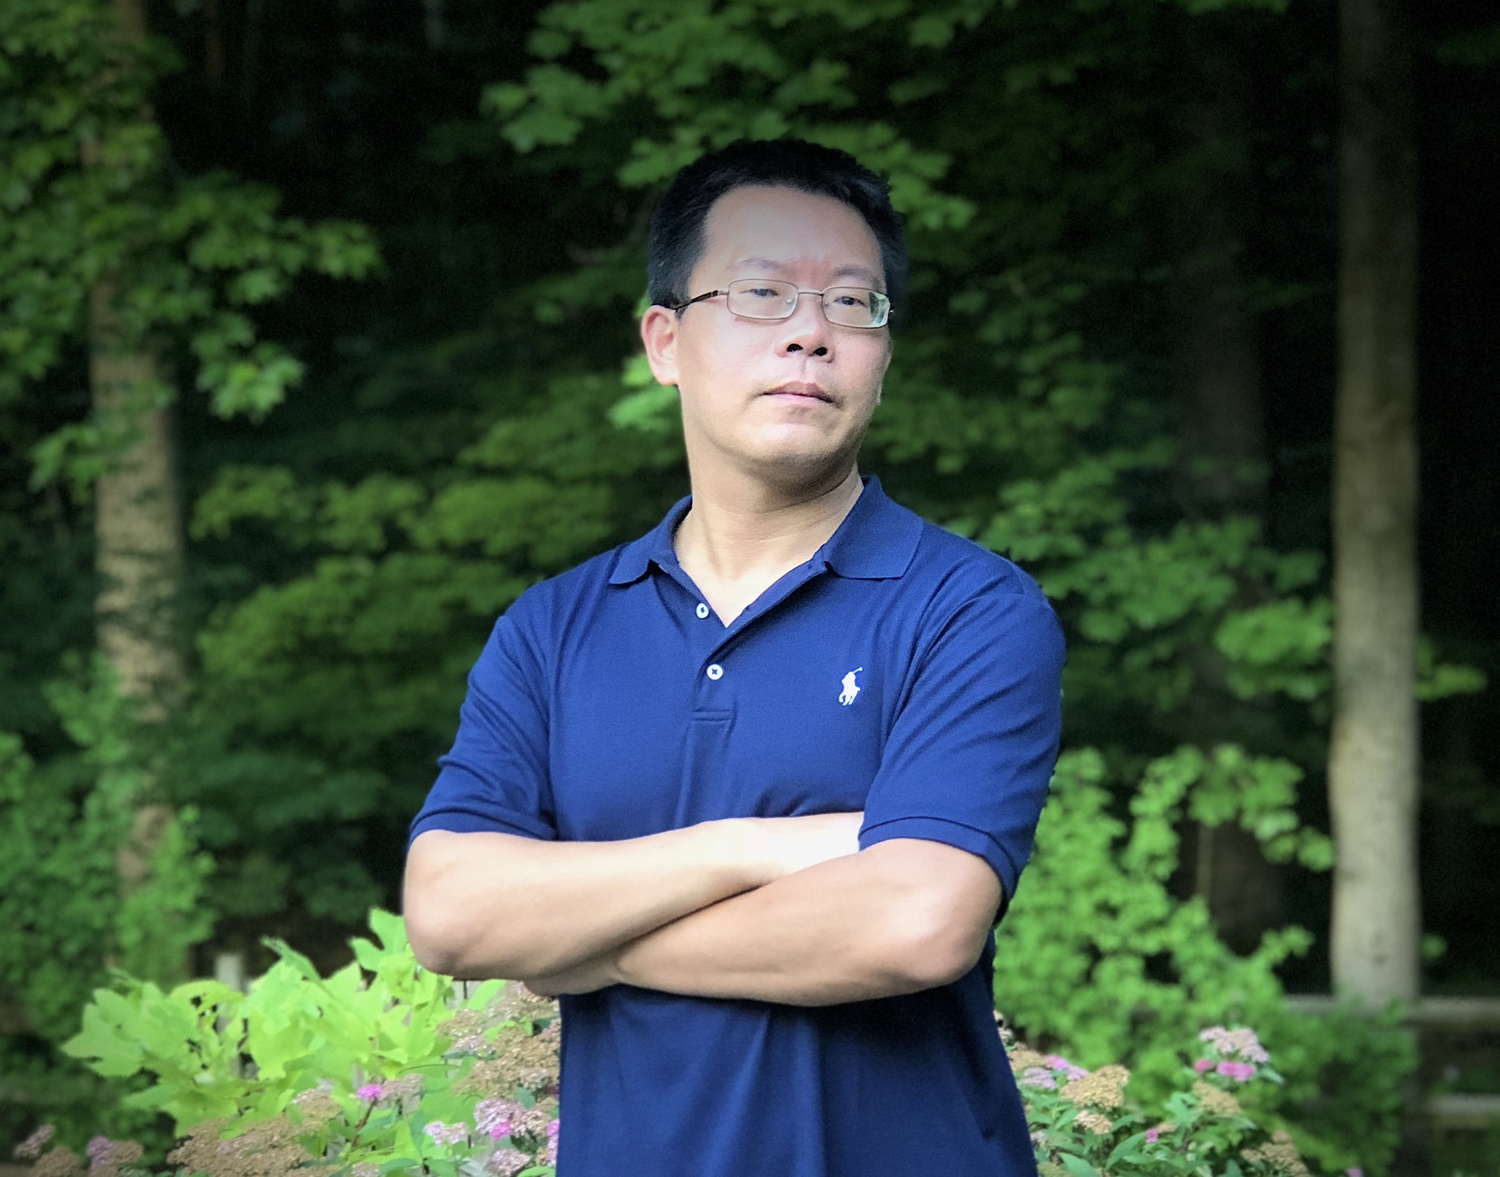 The experience of prominent Chinese dissident Teng Biao suggests that the University's relationship with China has begun to shift.